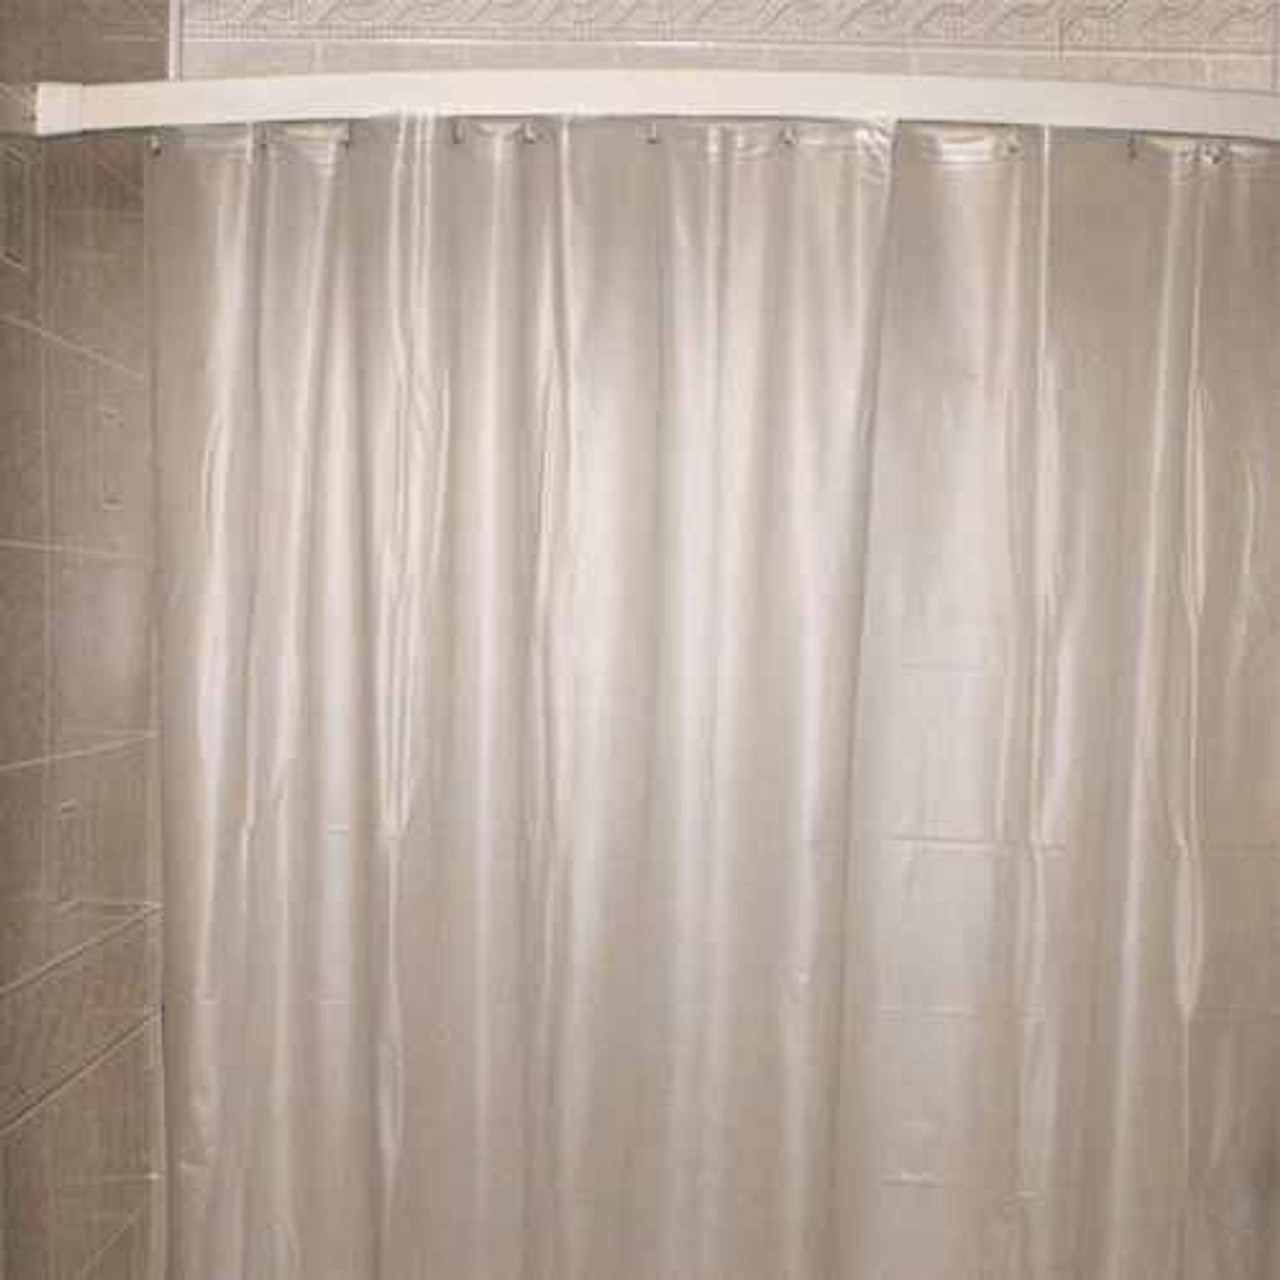 Kartri Kartrior 10 Gauge San Suede Executive Flame Retardantor Vinyl Shower Curtain w/ Metal Grommets pack of 12